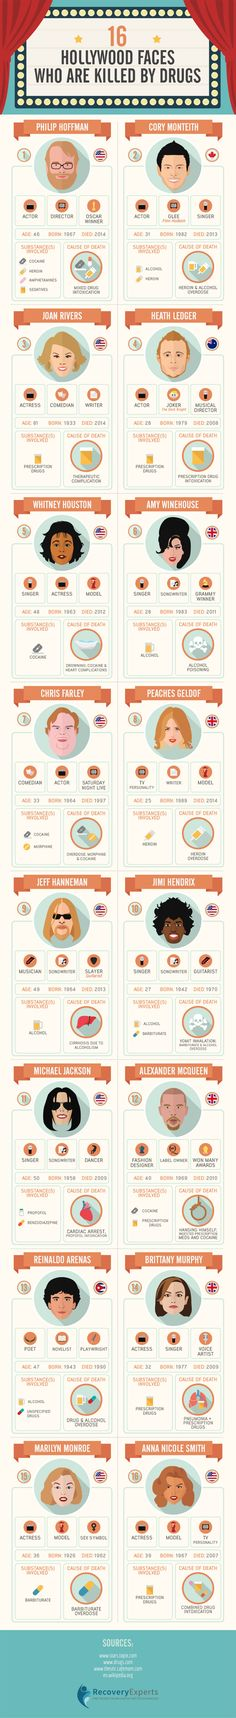 Celebrity Faces Who Are Killed by Drugs Infographic. Topic: film, actor, actress, movie